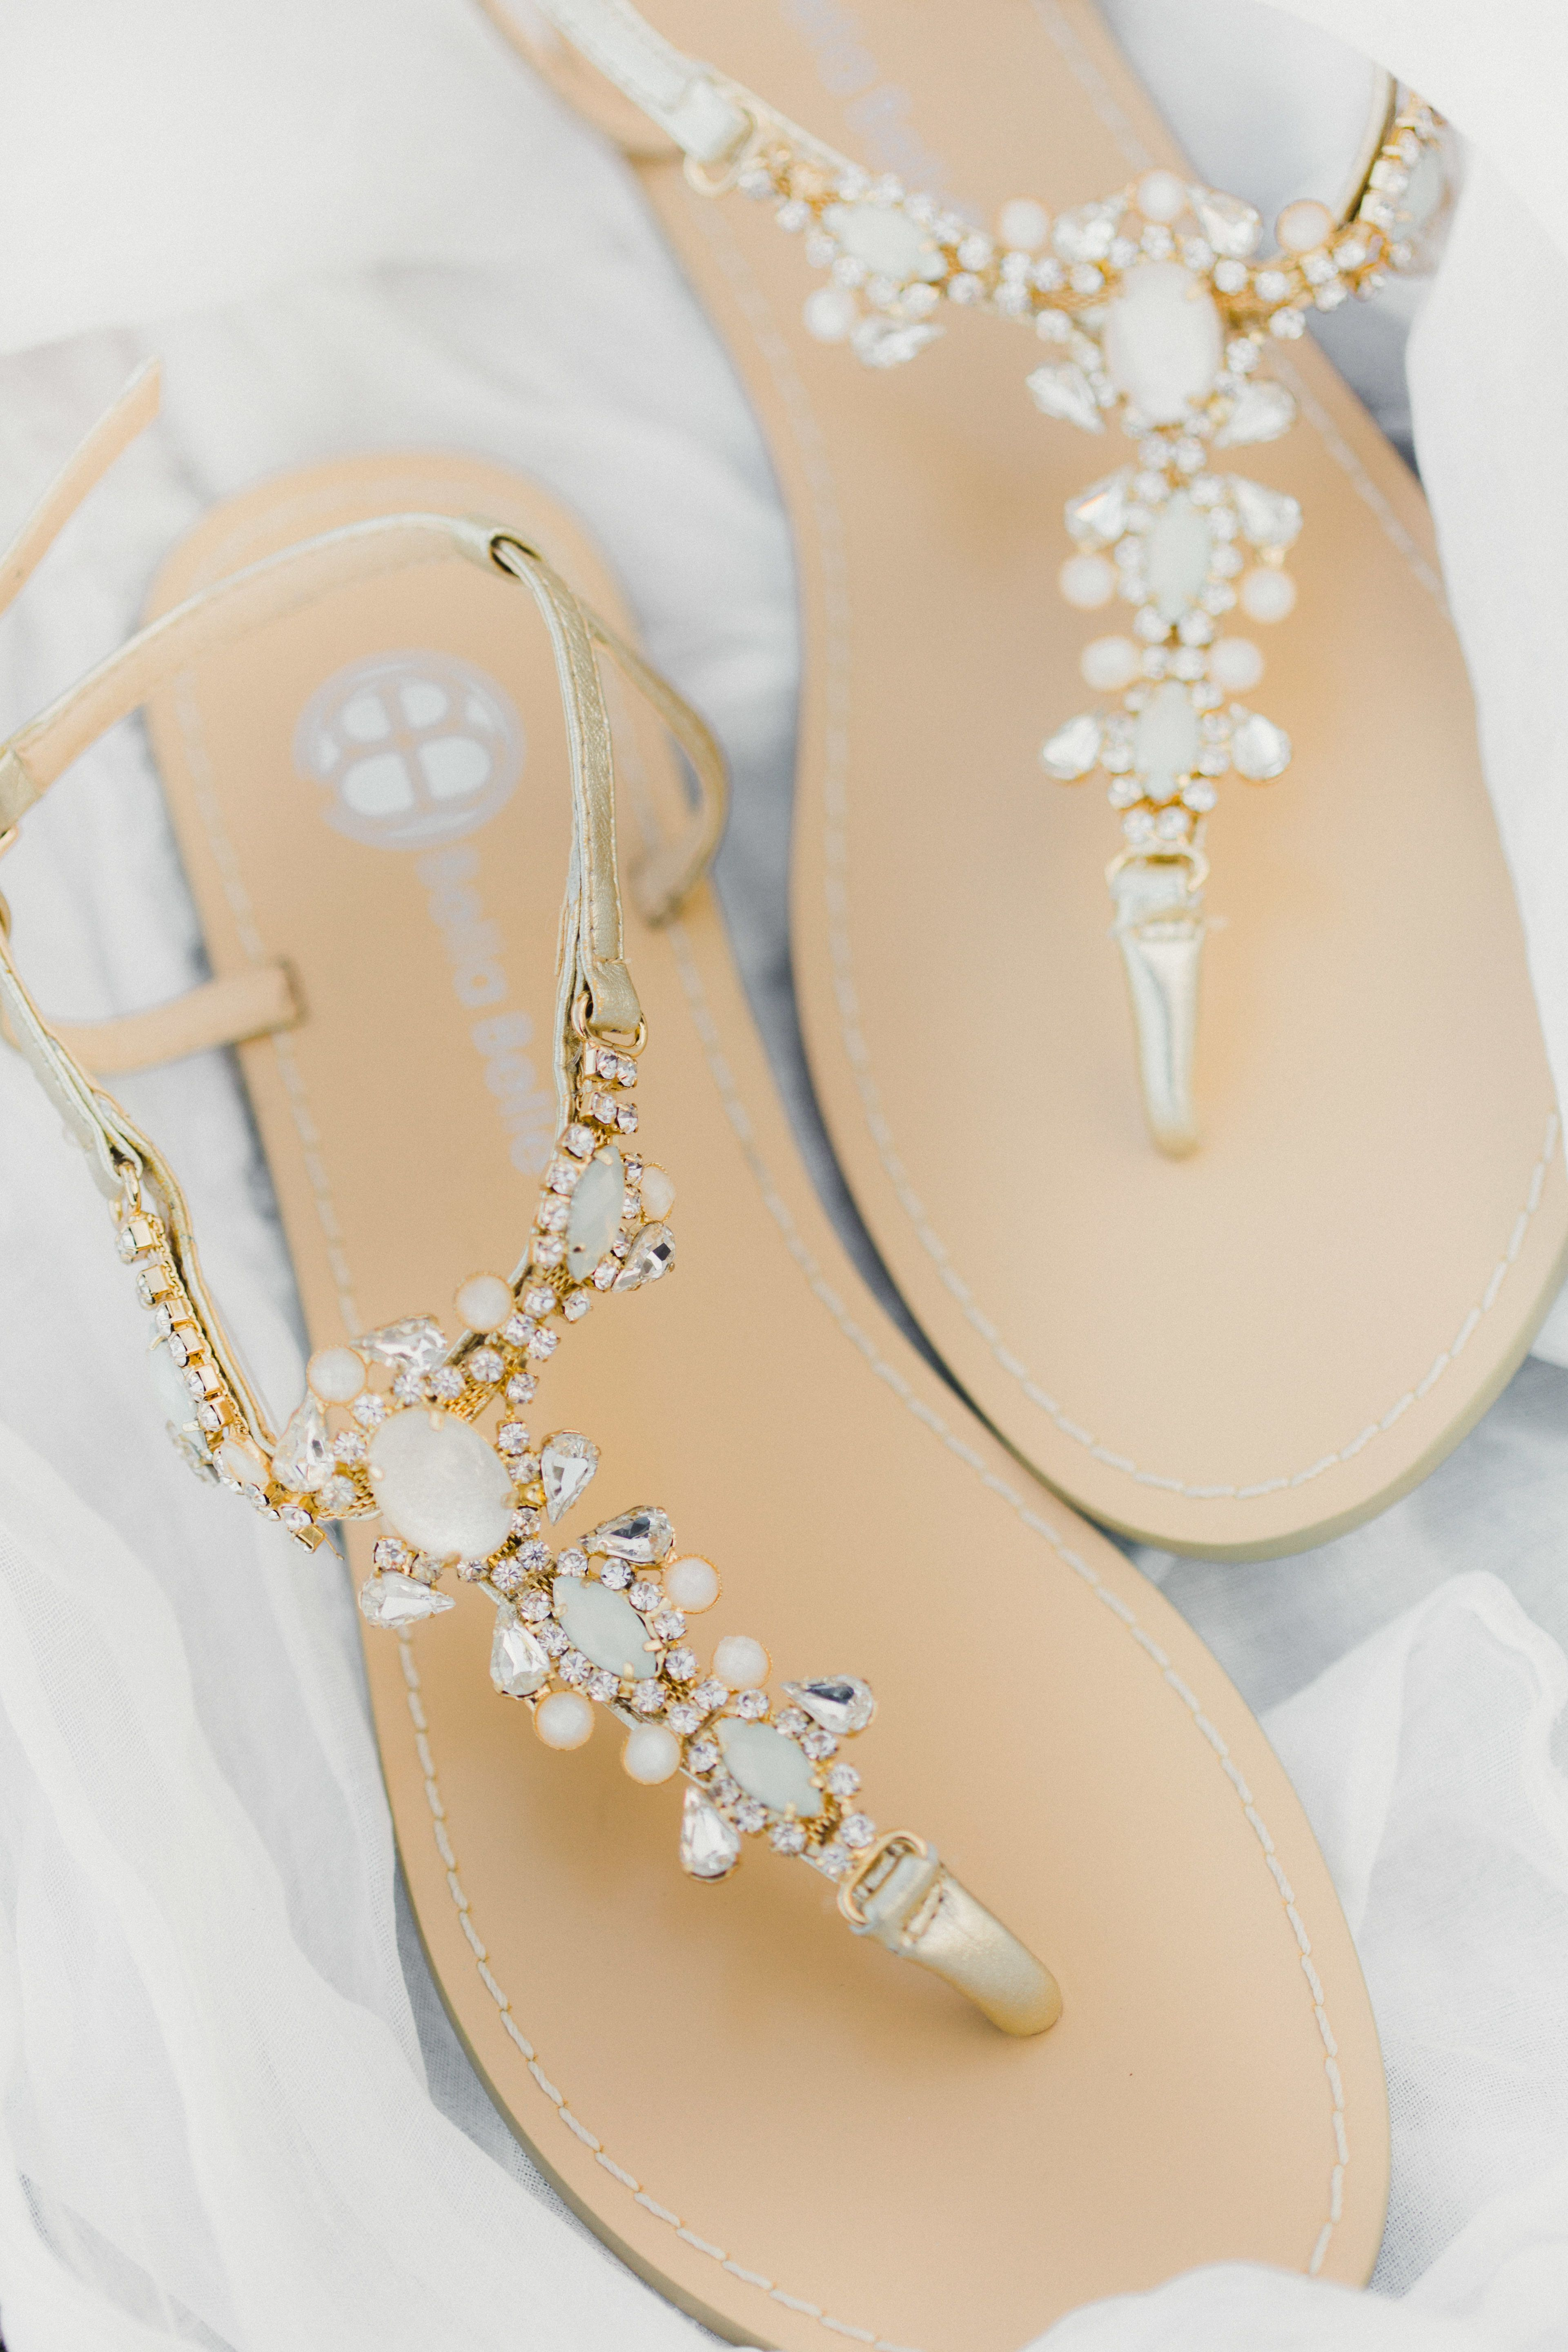 396e08c68d76 Our Top 10 Bella Belle Shoe Picks for Your Big Day in 2019